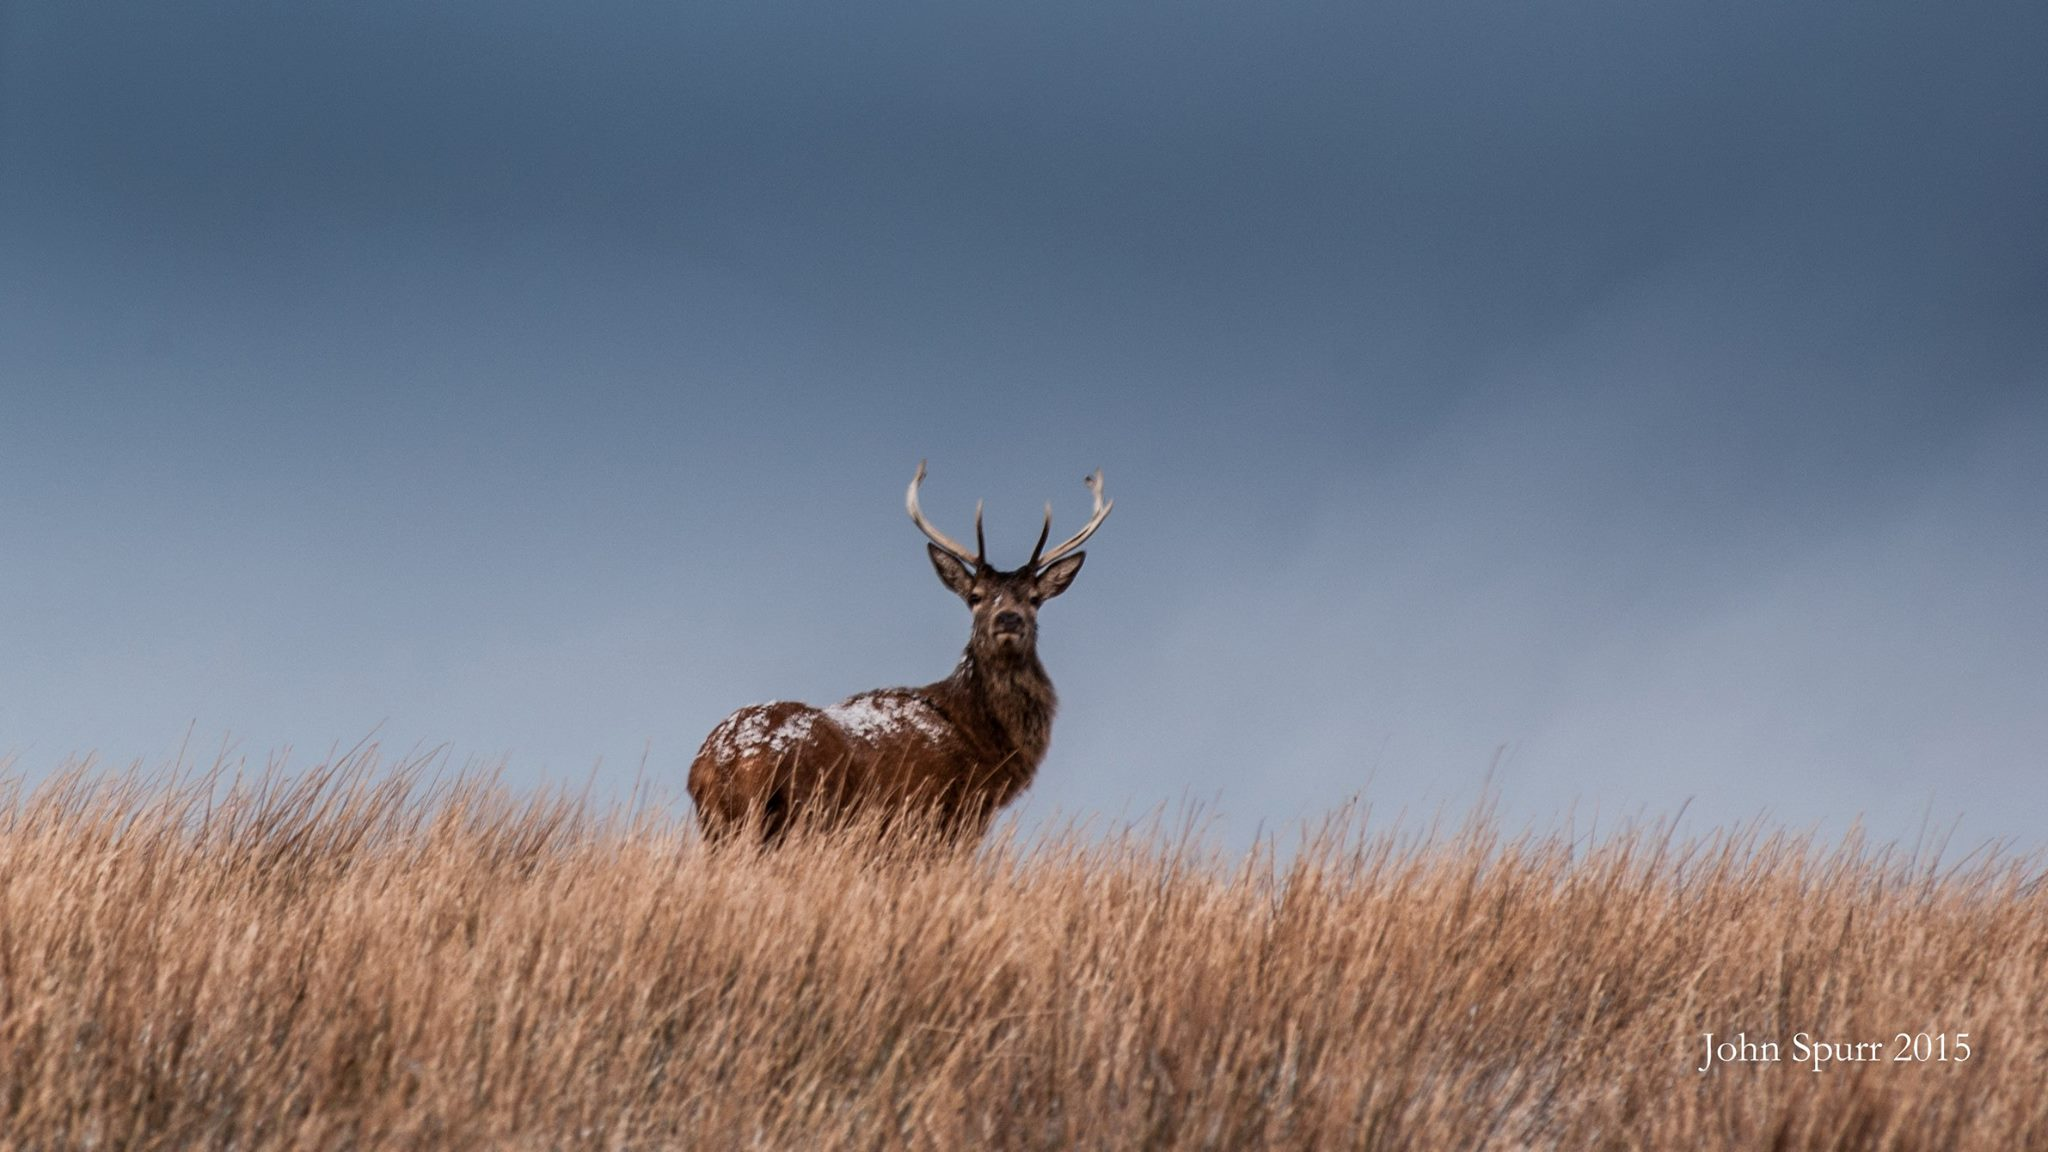 A snowy stag on Exmoor, January 2015,